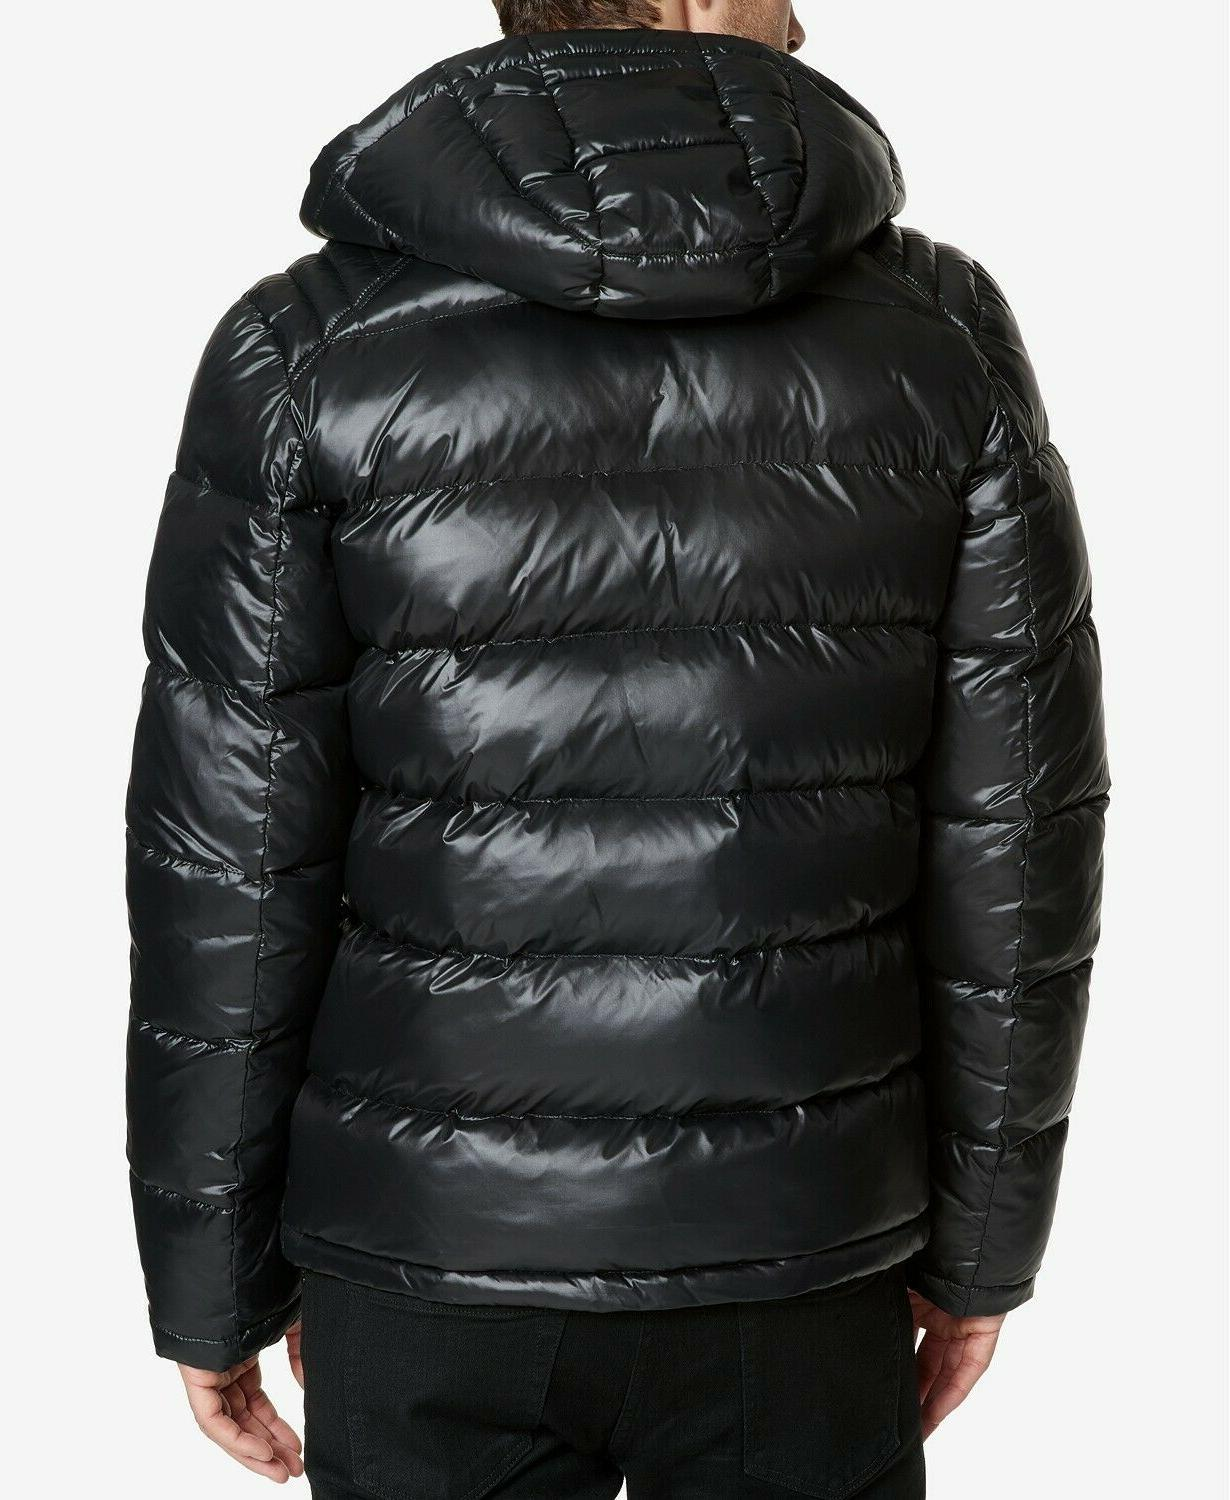 GUESS Men's Removable Hood NEW Original Tags